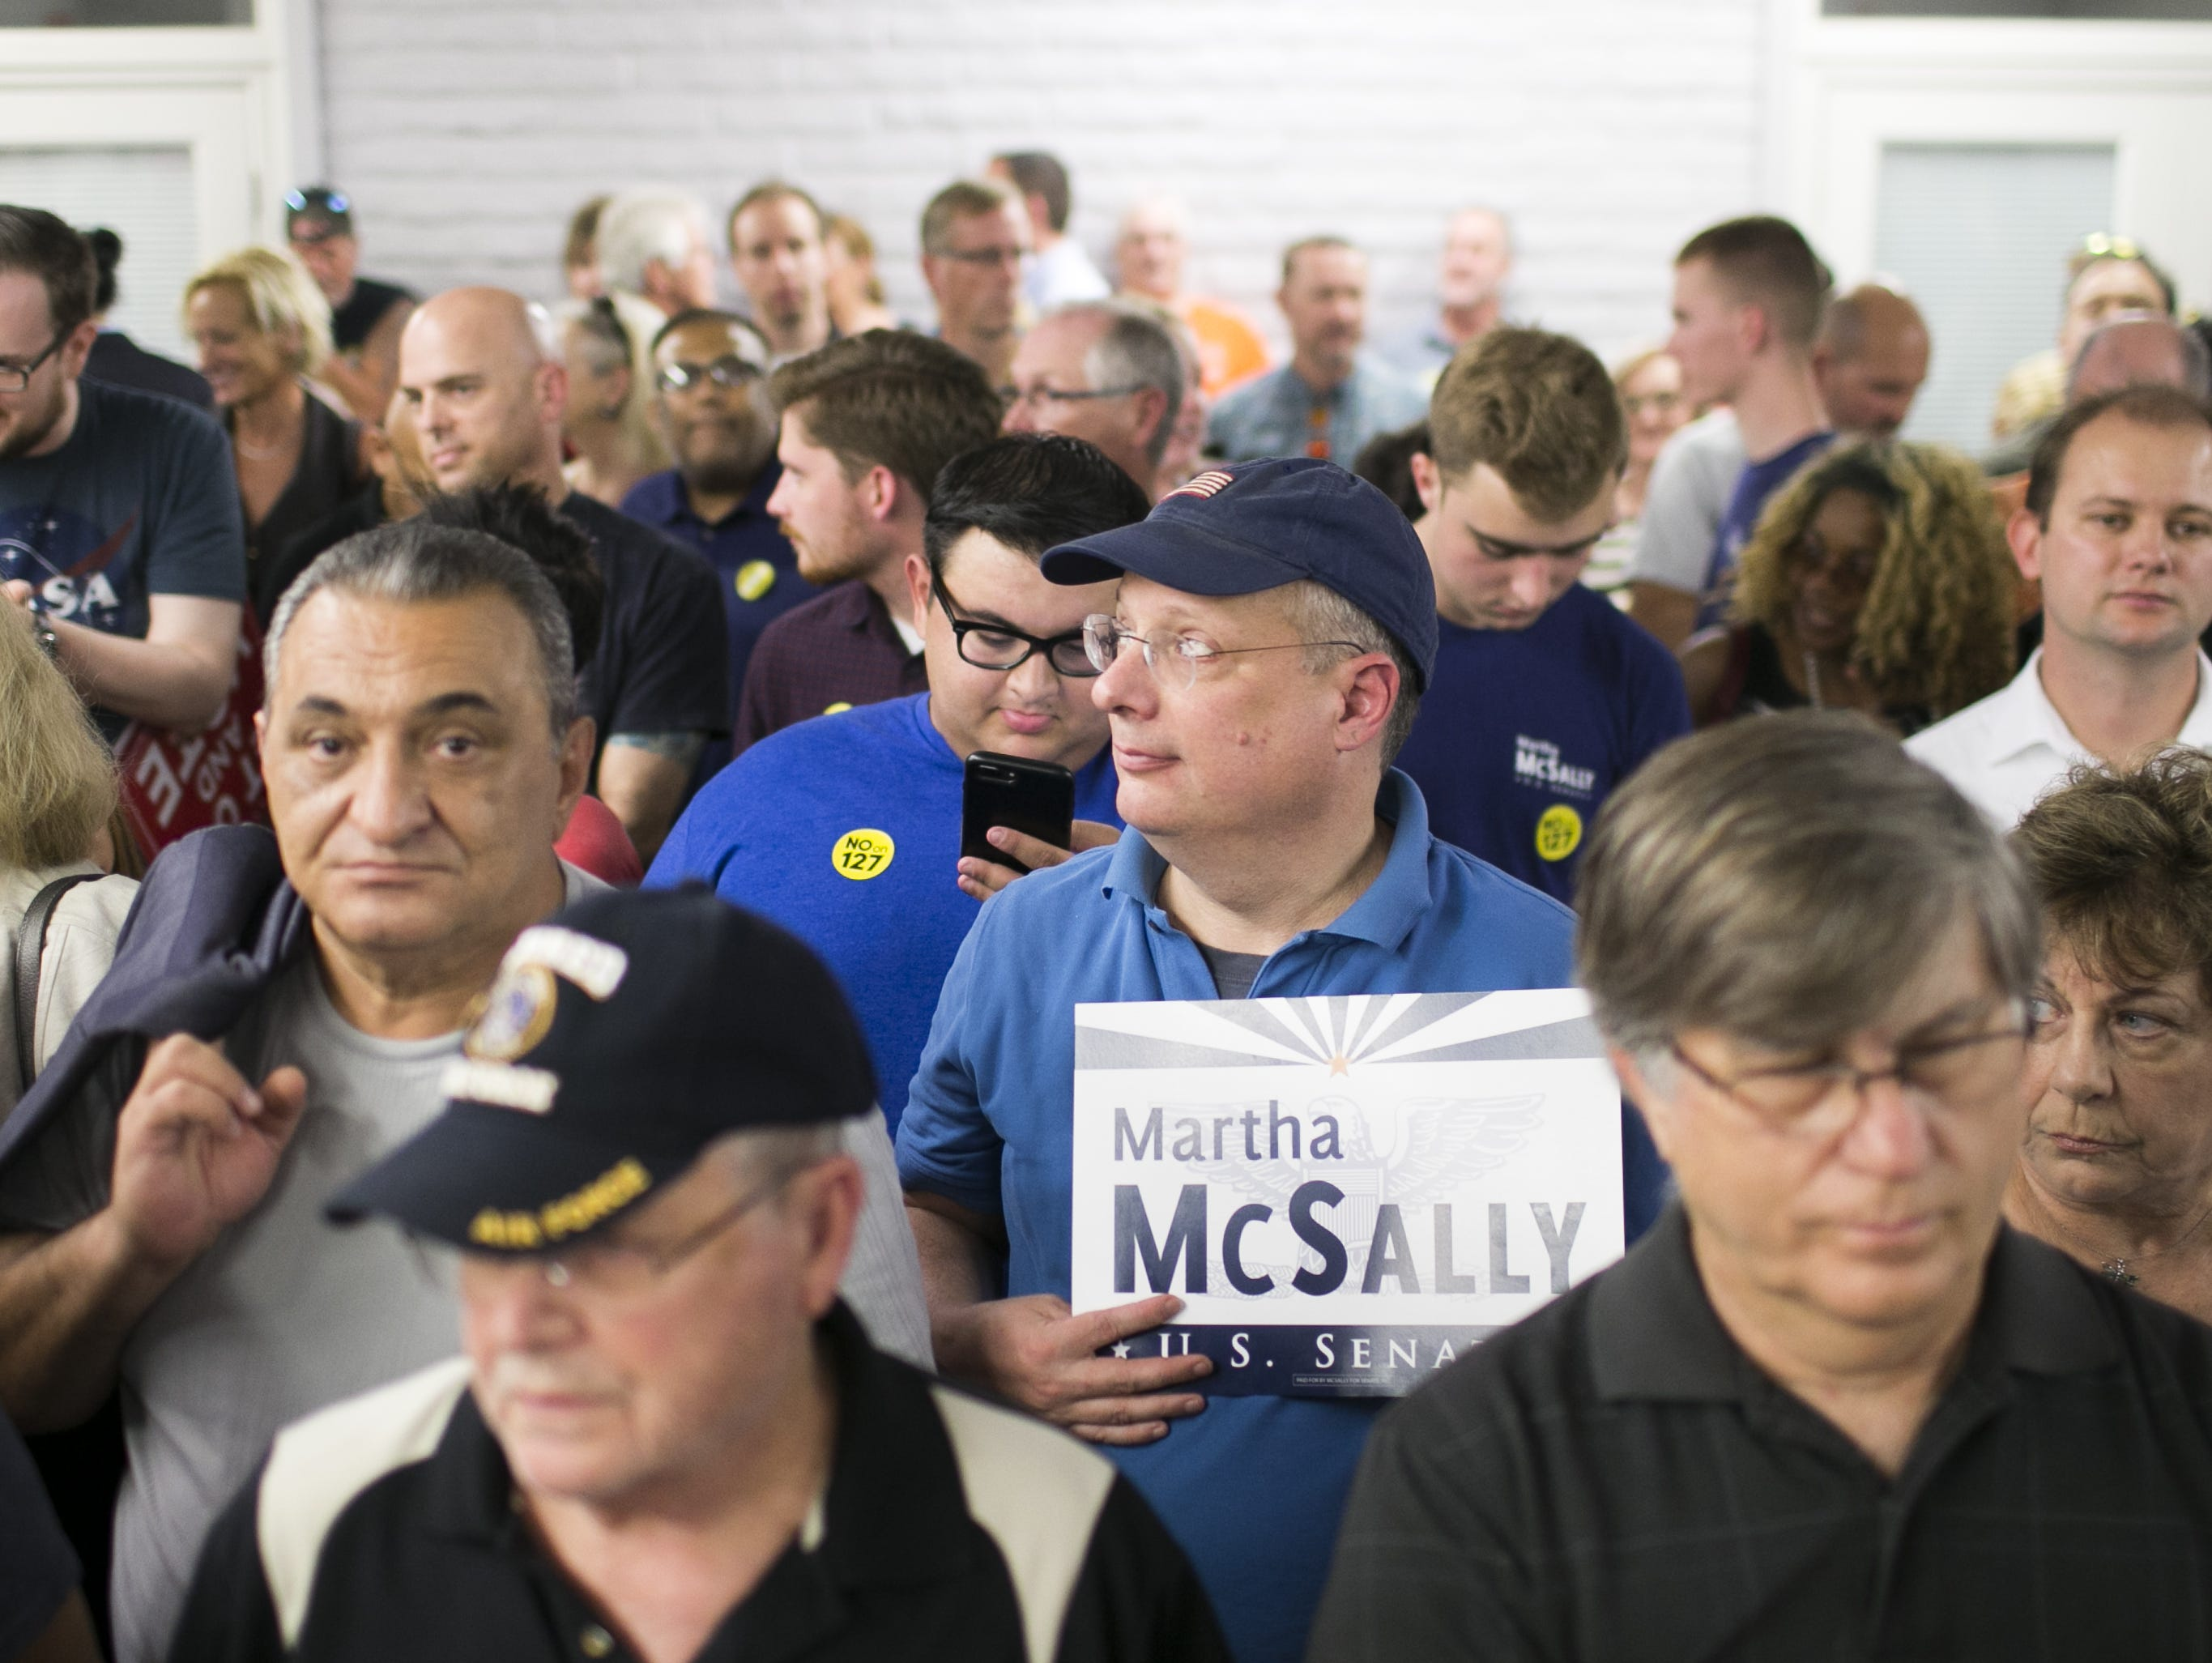 Republican supporters wait to see U.S. Senate candidate Martha McSally and Sen. Lindsey Graham, R-S.C. speak at the Arizona GOP headquarters in Phoenix, Ariz. on Oct. 27, 2018.